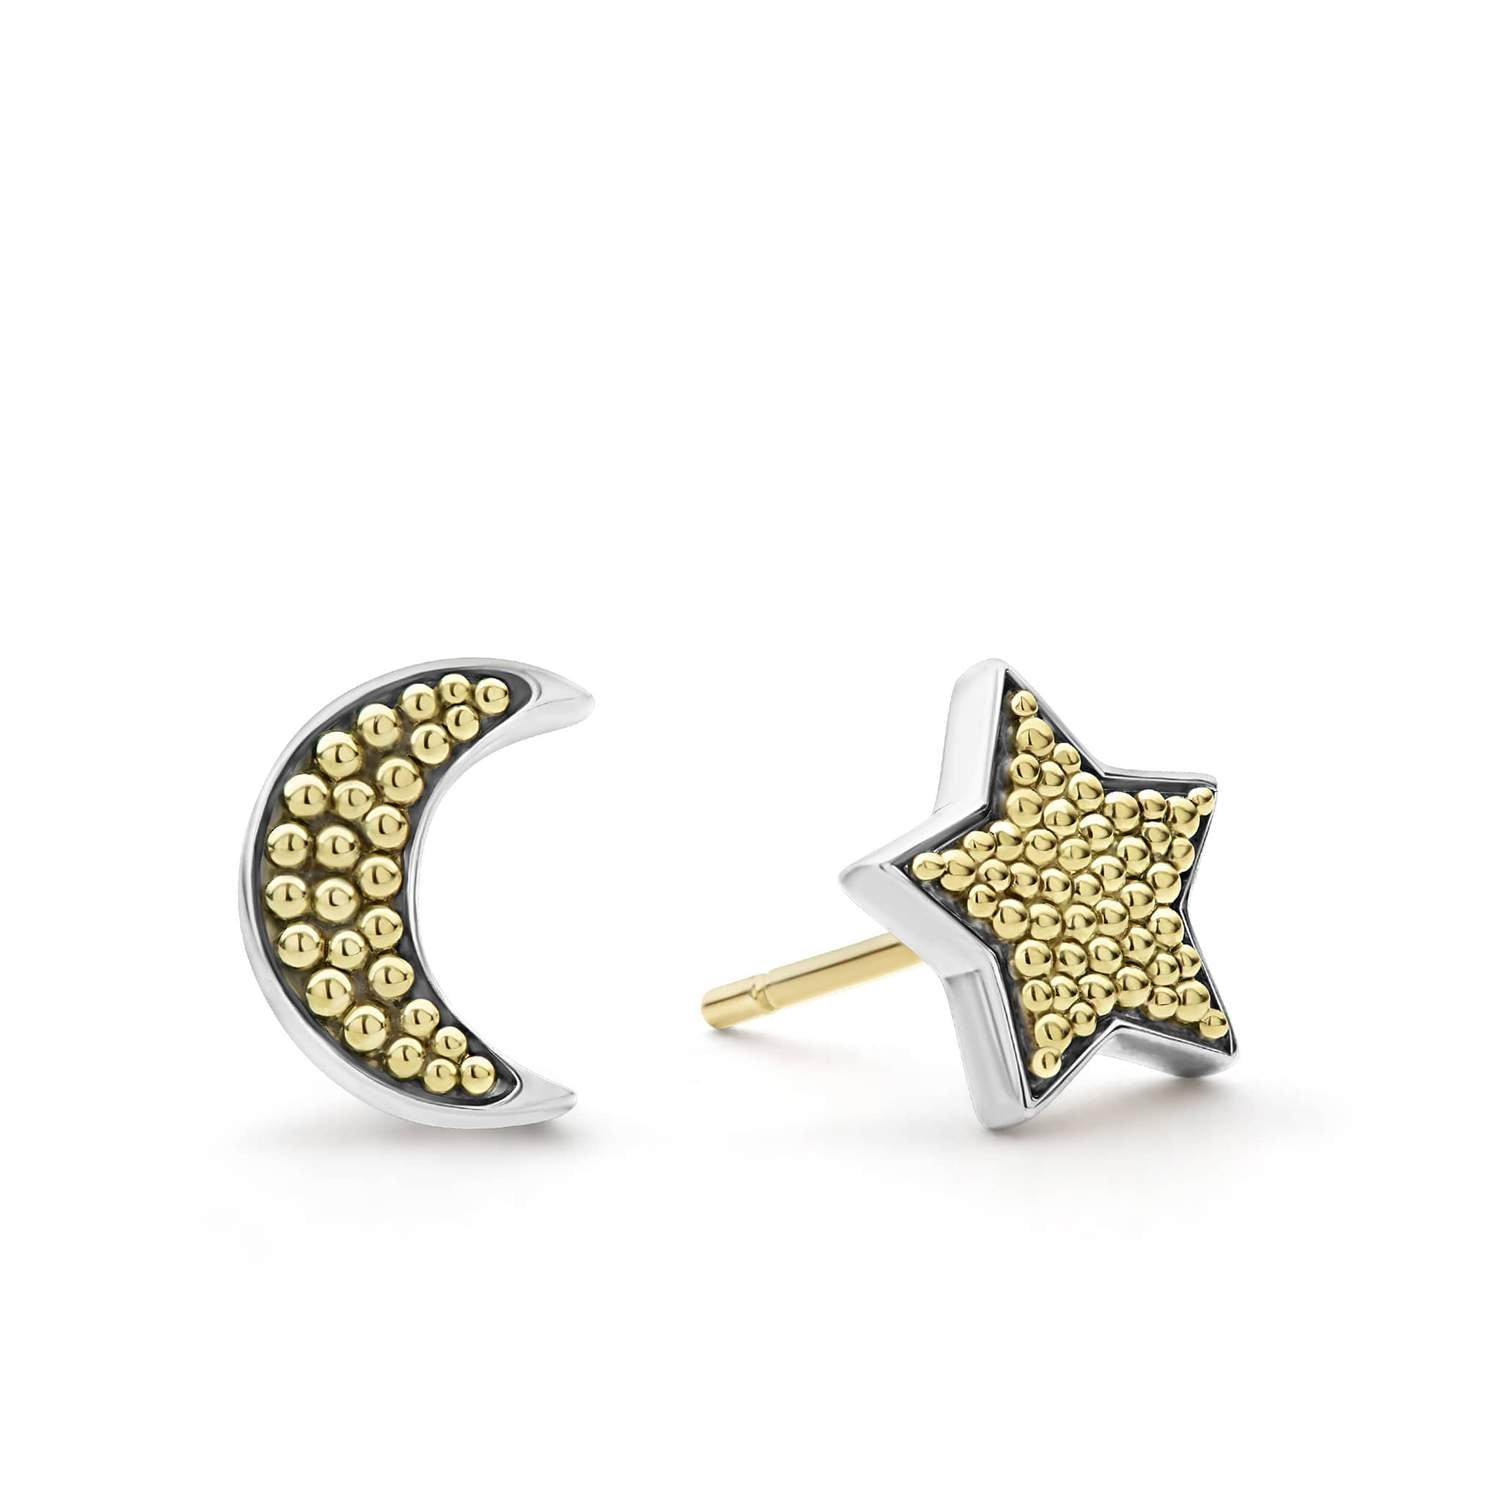 LAGOS 'Signature Caviar' Moon & Star Stud Earrings